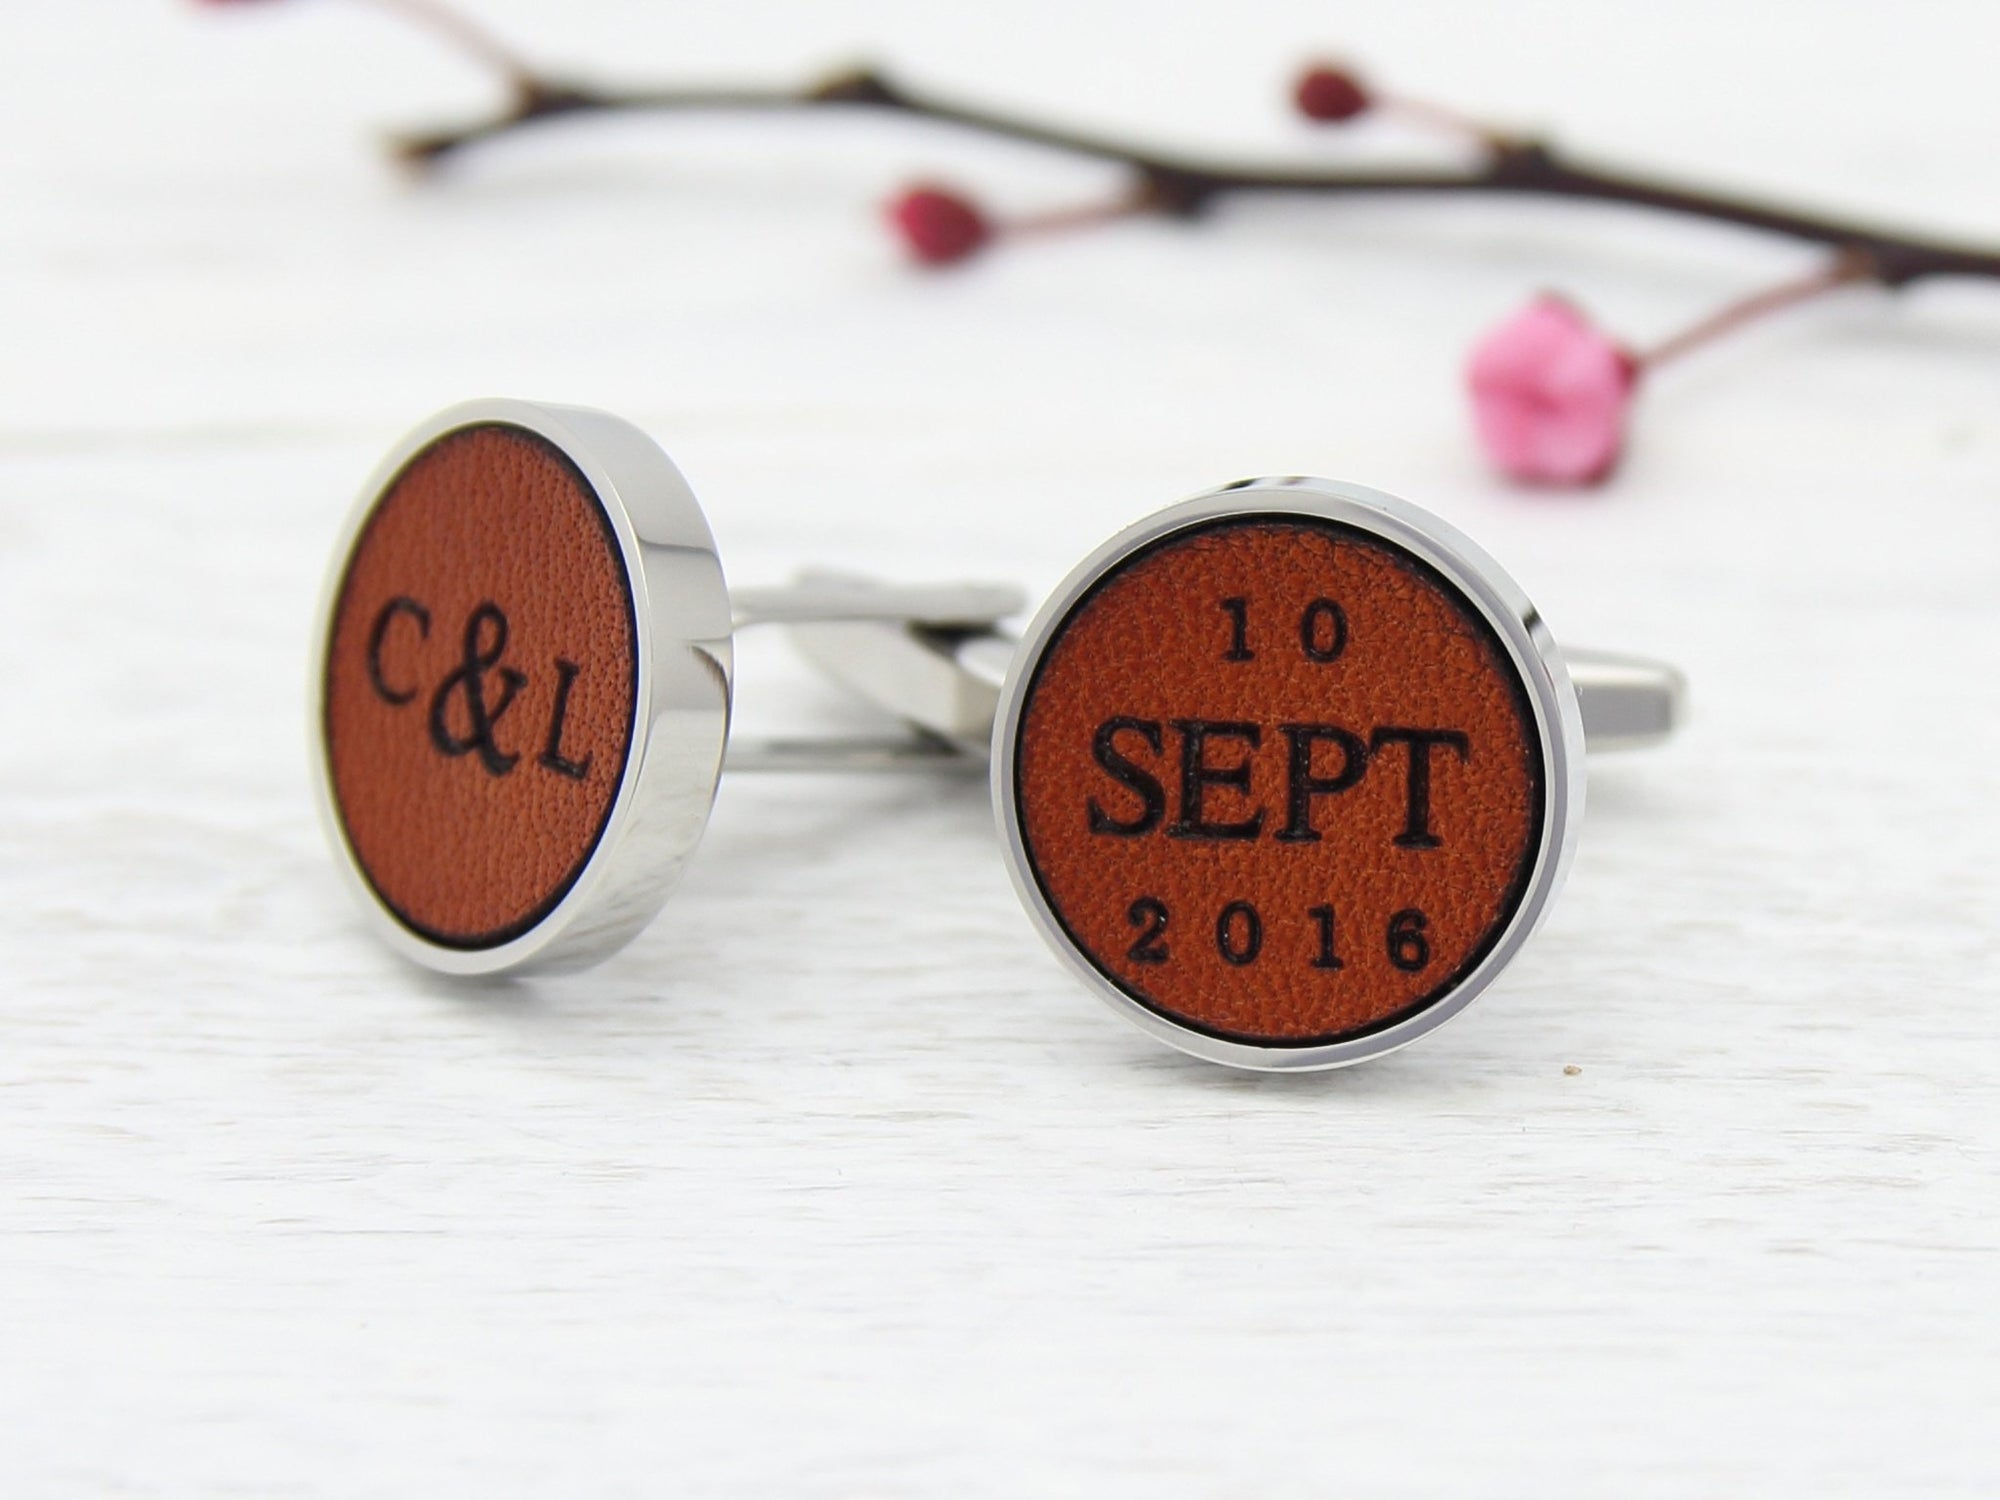 Leather Engraved Cufflinks with Initials and Date